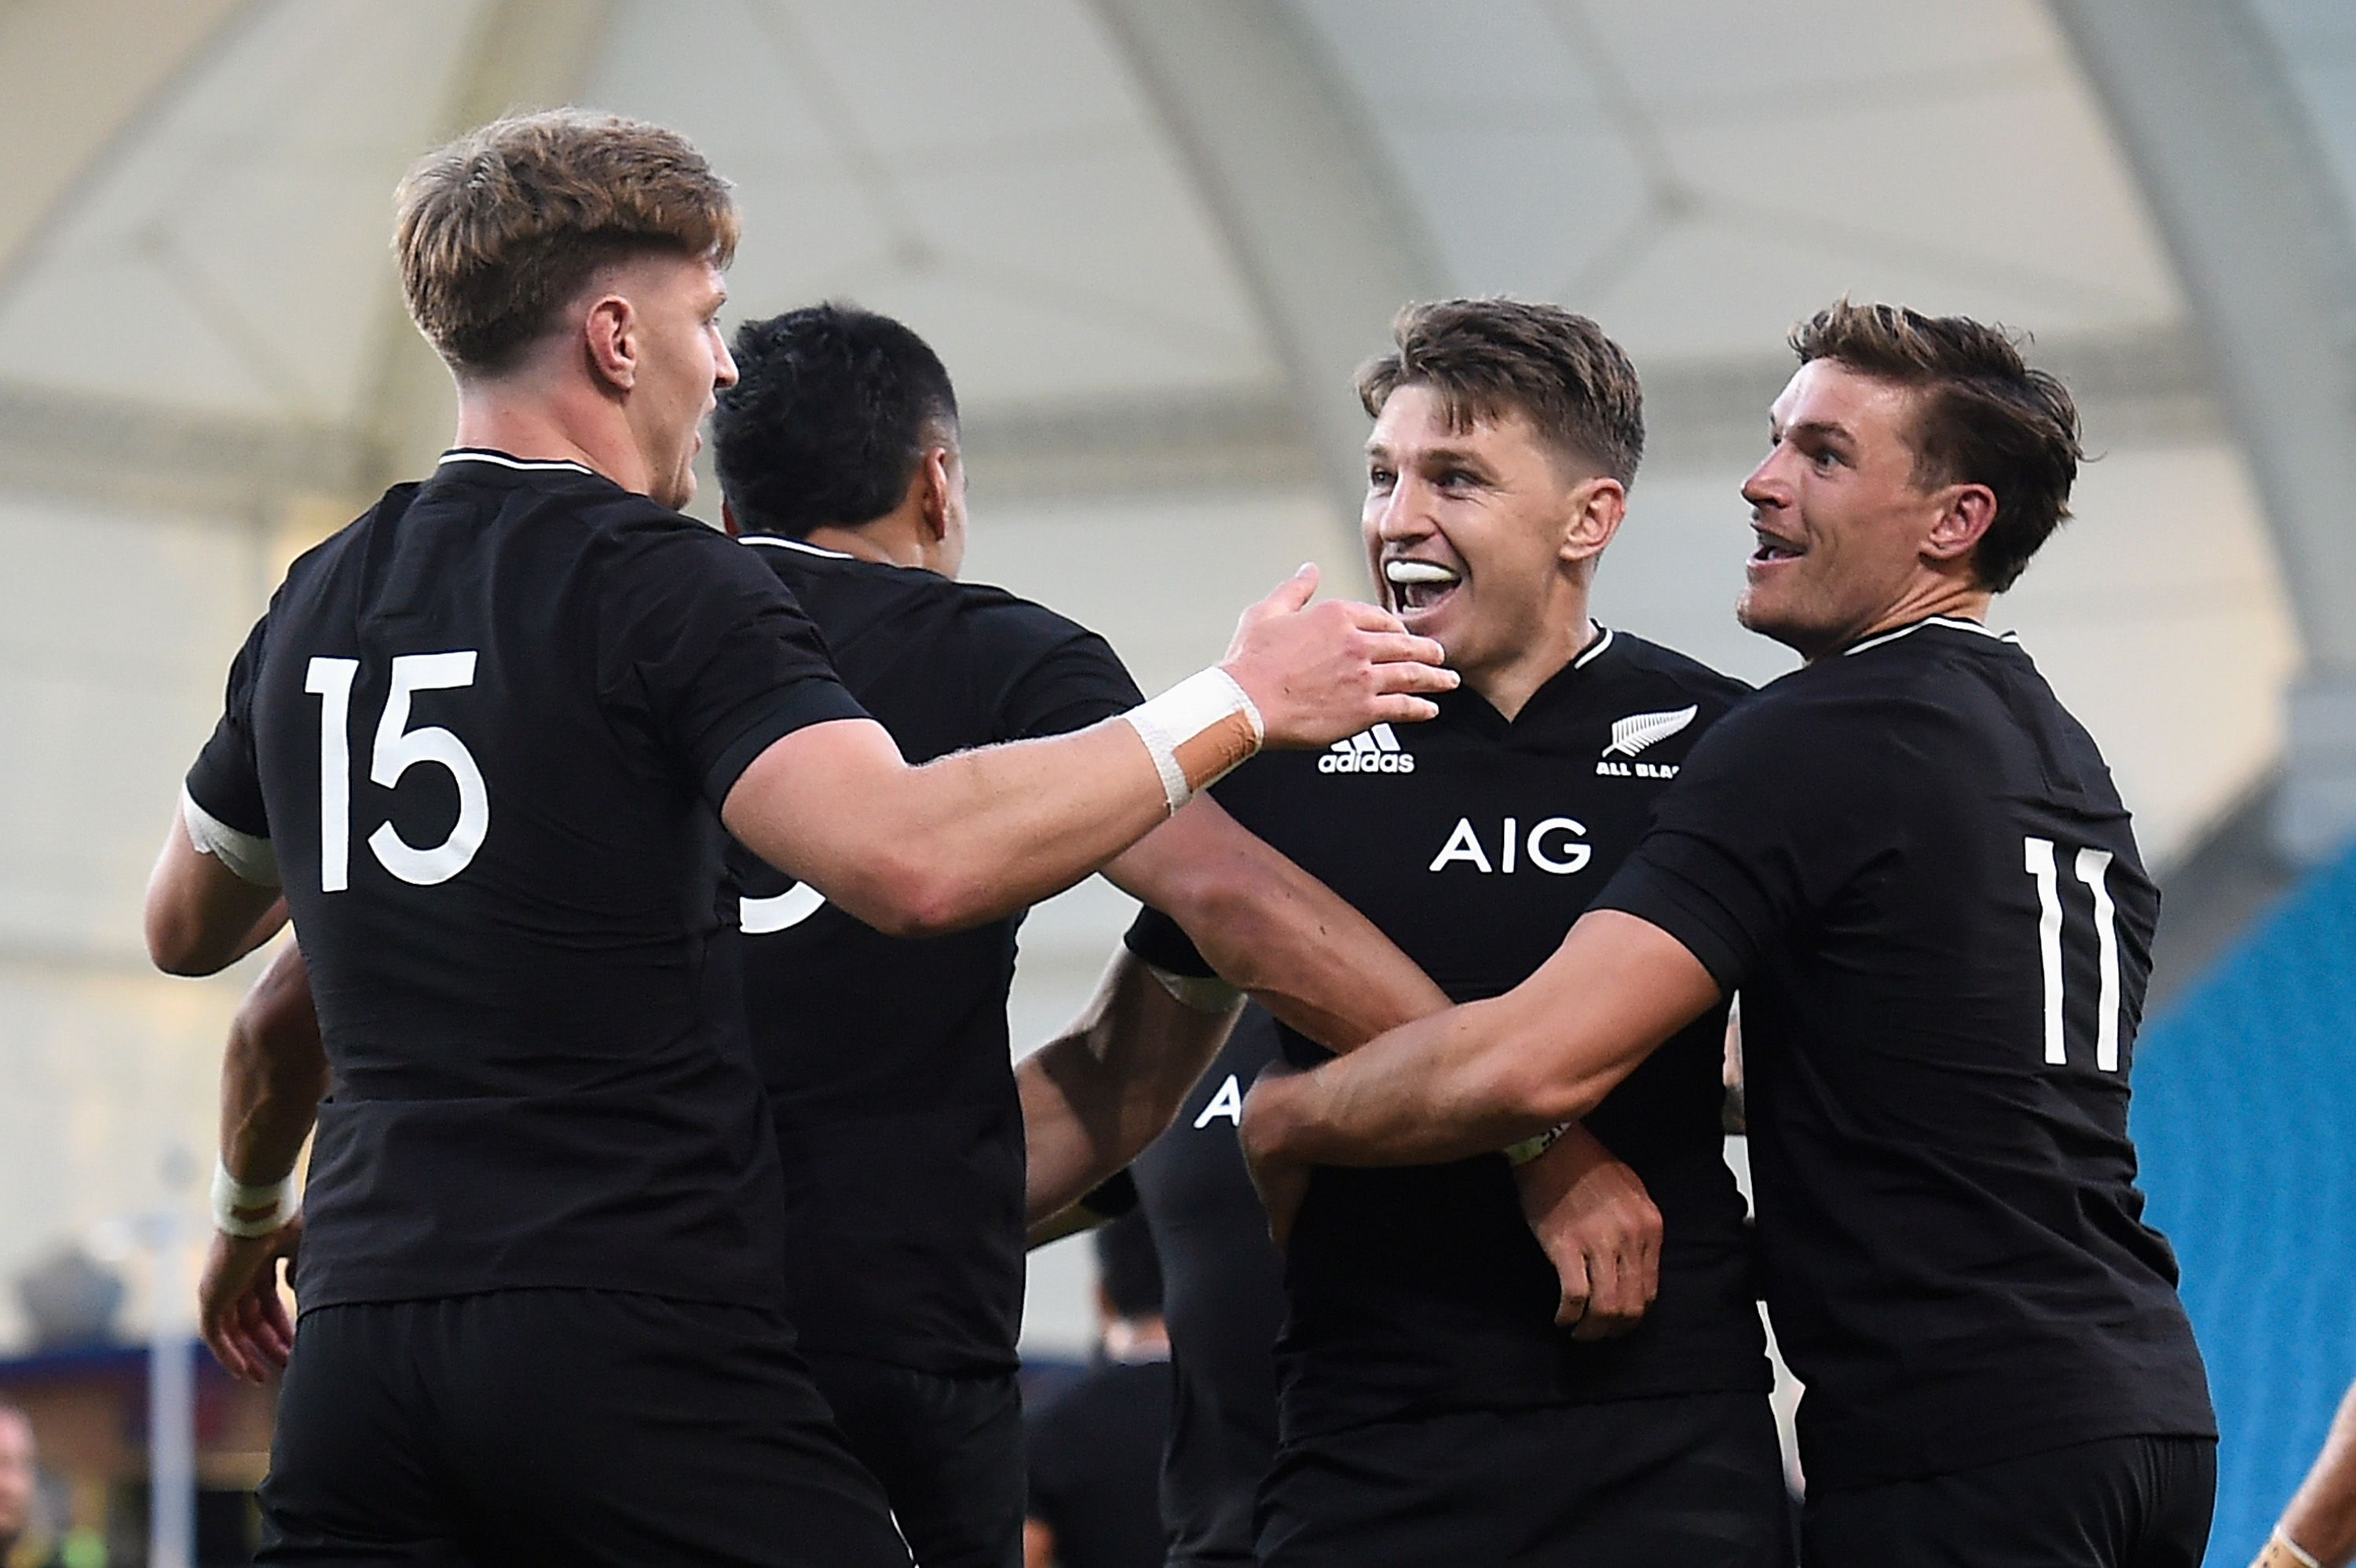 Rugby Championship: All Blacks thump Argentina 39-0 in emphatic all around performance